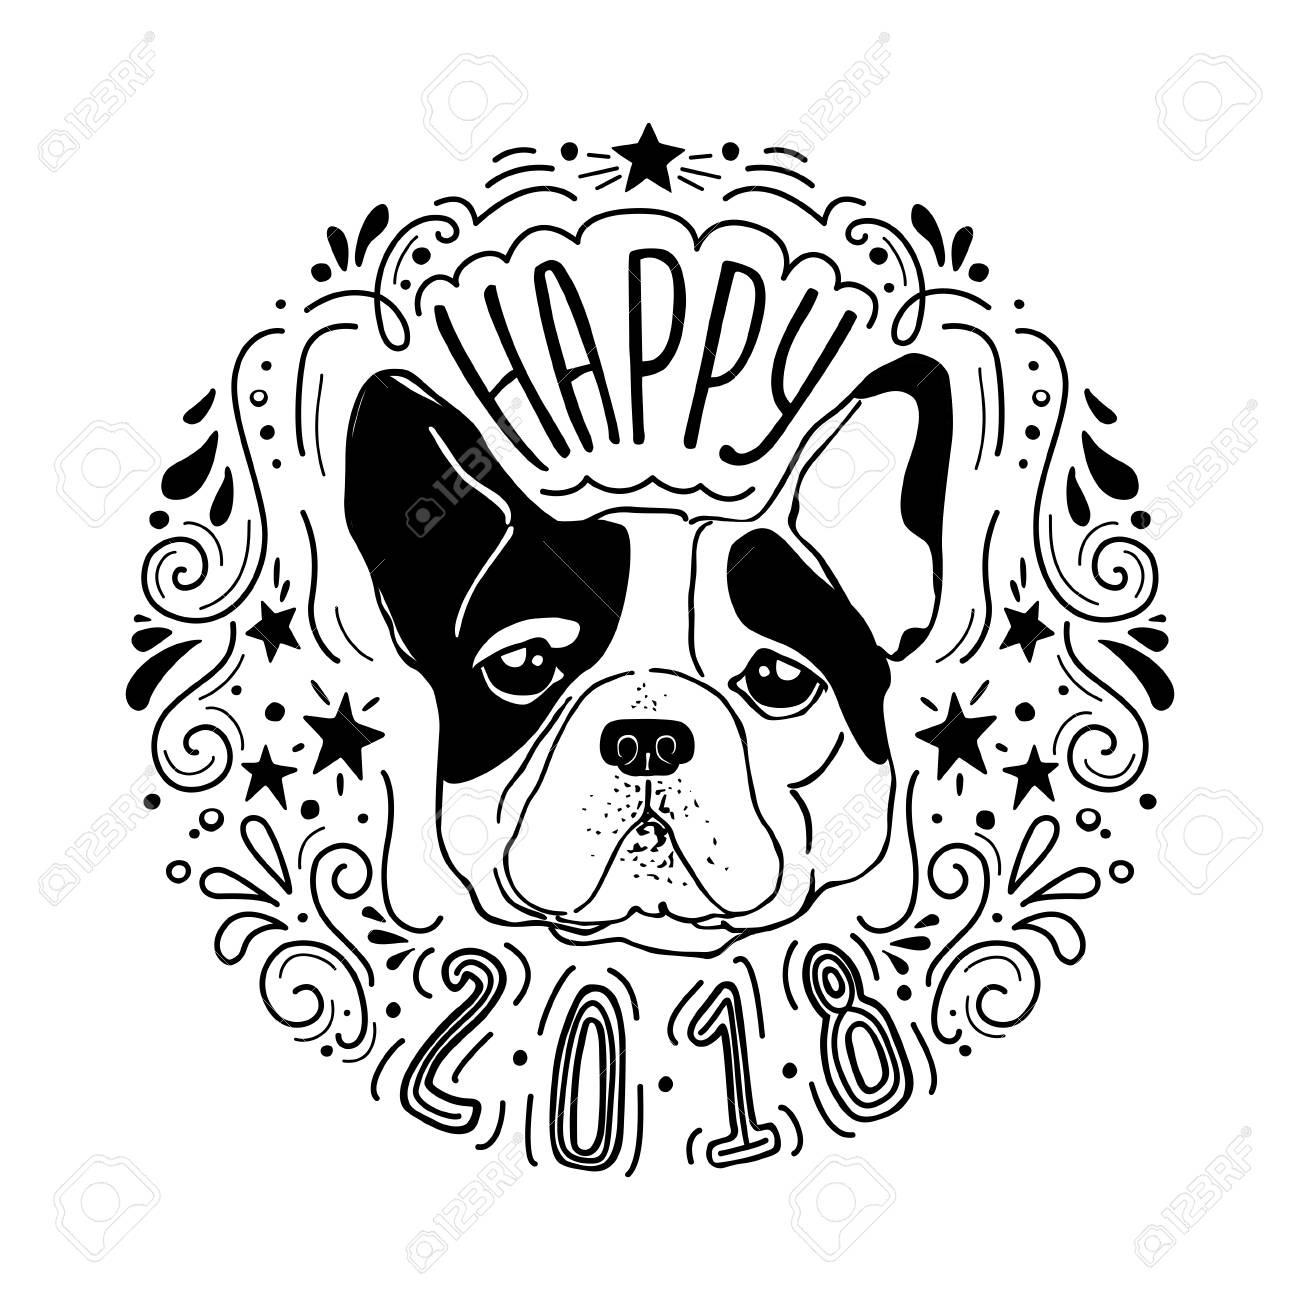 Vector Drawn Poster With French Bulldog And Decorative Design Elements Year Of